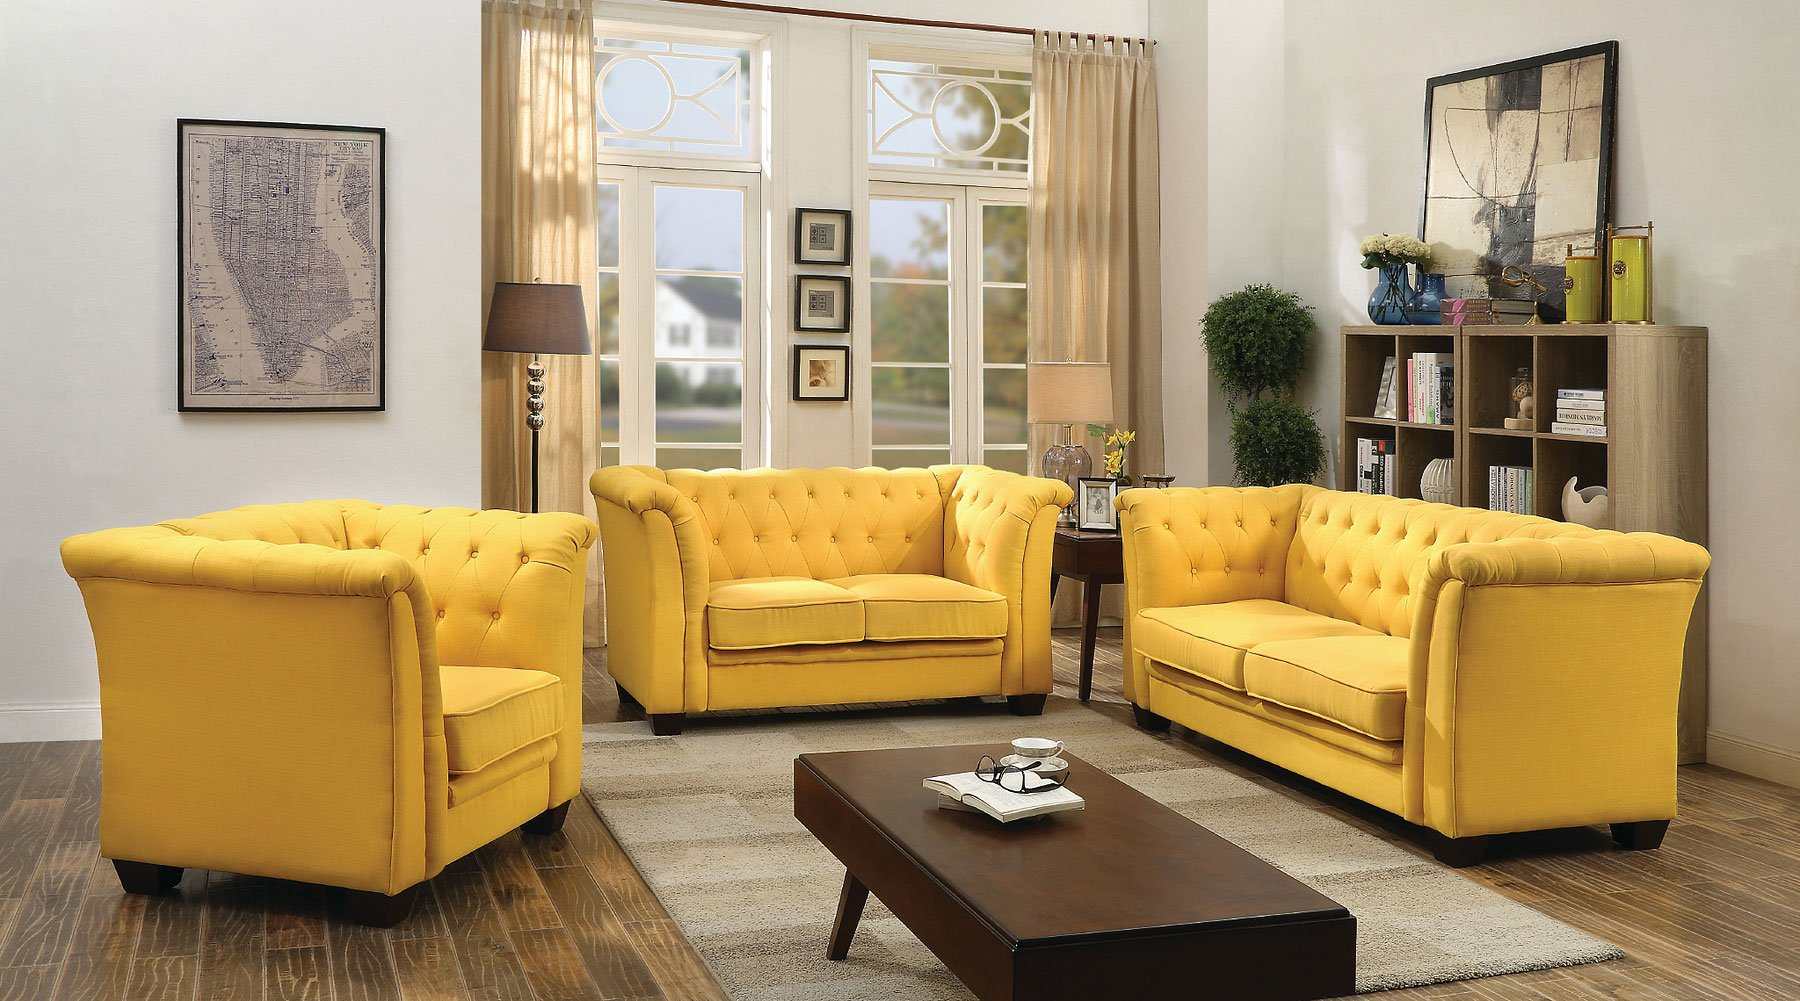 Gelbe Möbel G322 Tufted Living Room Set (yellow) By Glory Furniture